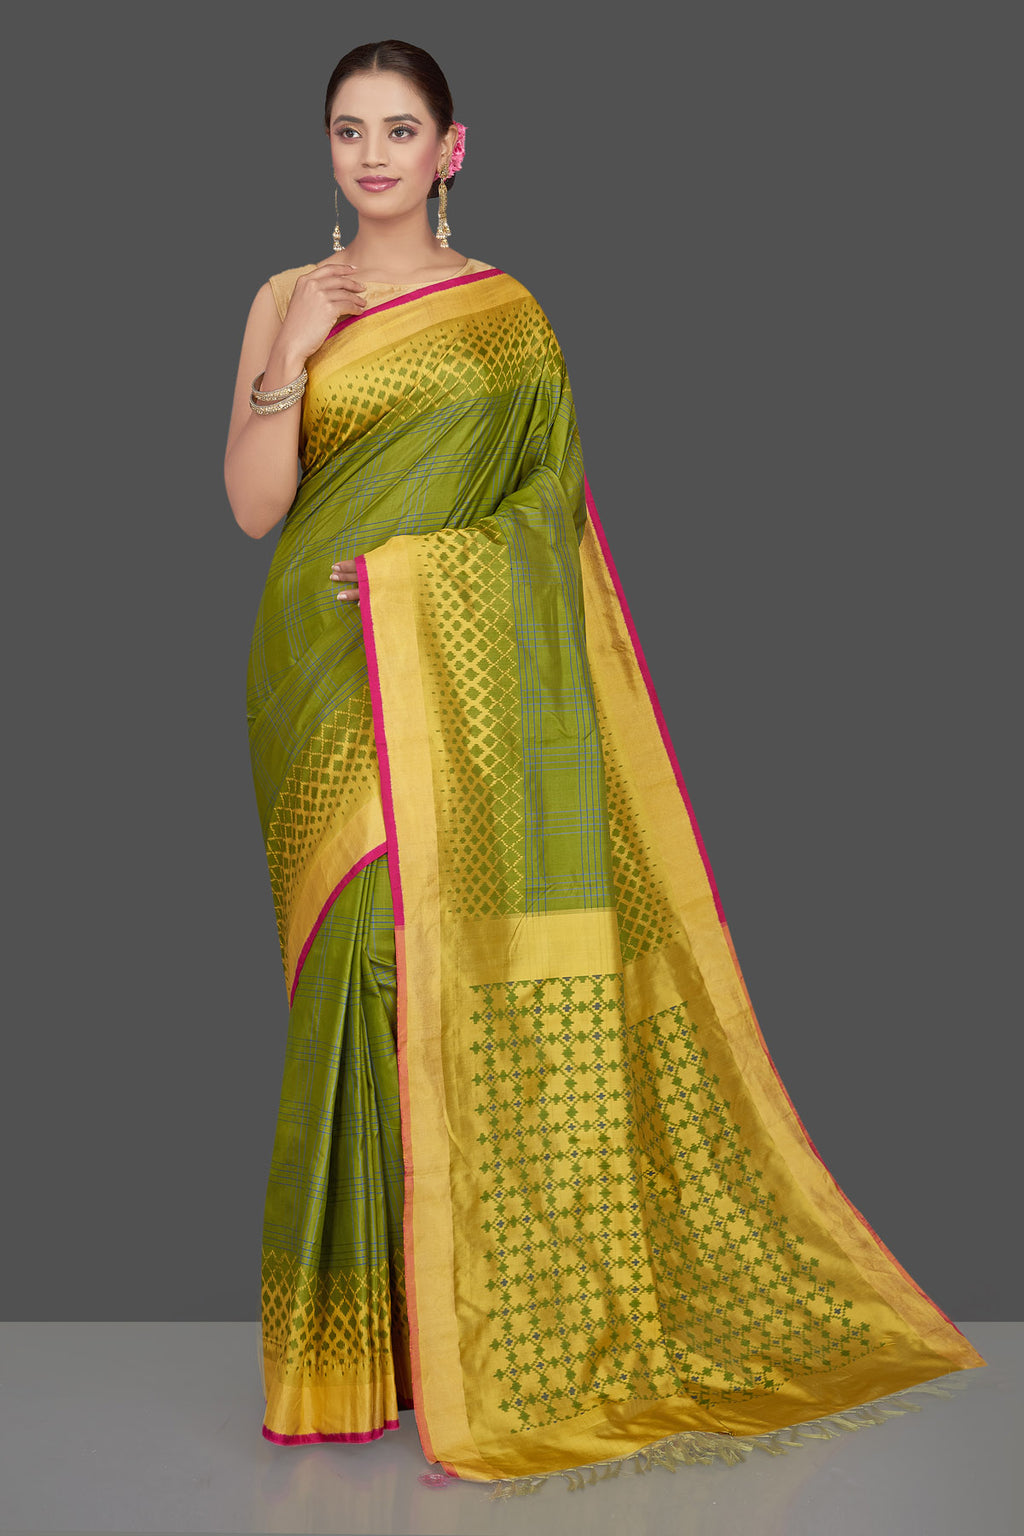 Buy beautiful mehendi green and blue check ikkat silk saree online in USA with golden border. Get ready for festive occasions in exclusive silk sarees, ikkat saris, Kanchipuram silk saris, designer sarees from Pure Elegance Indian sarees store in USA.-full view